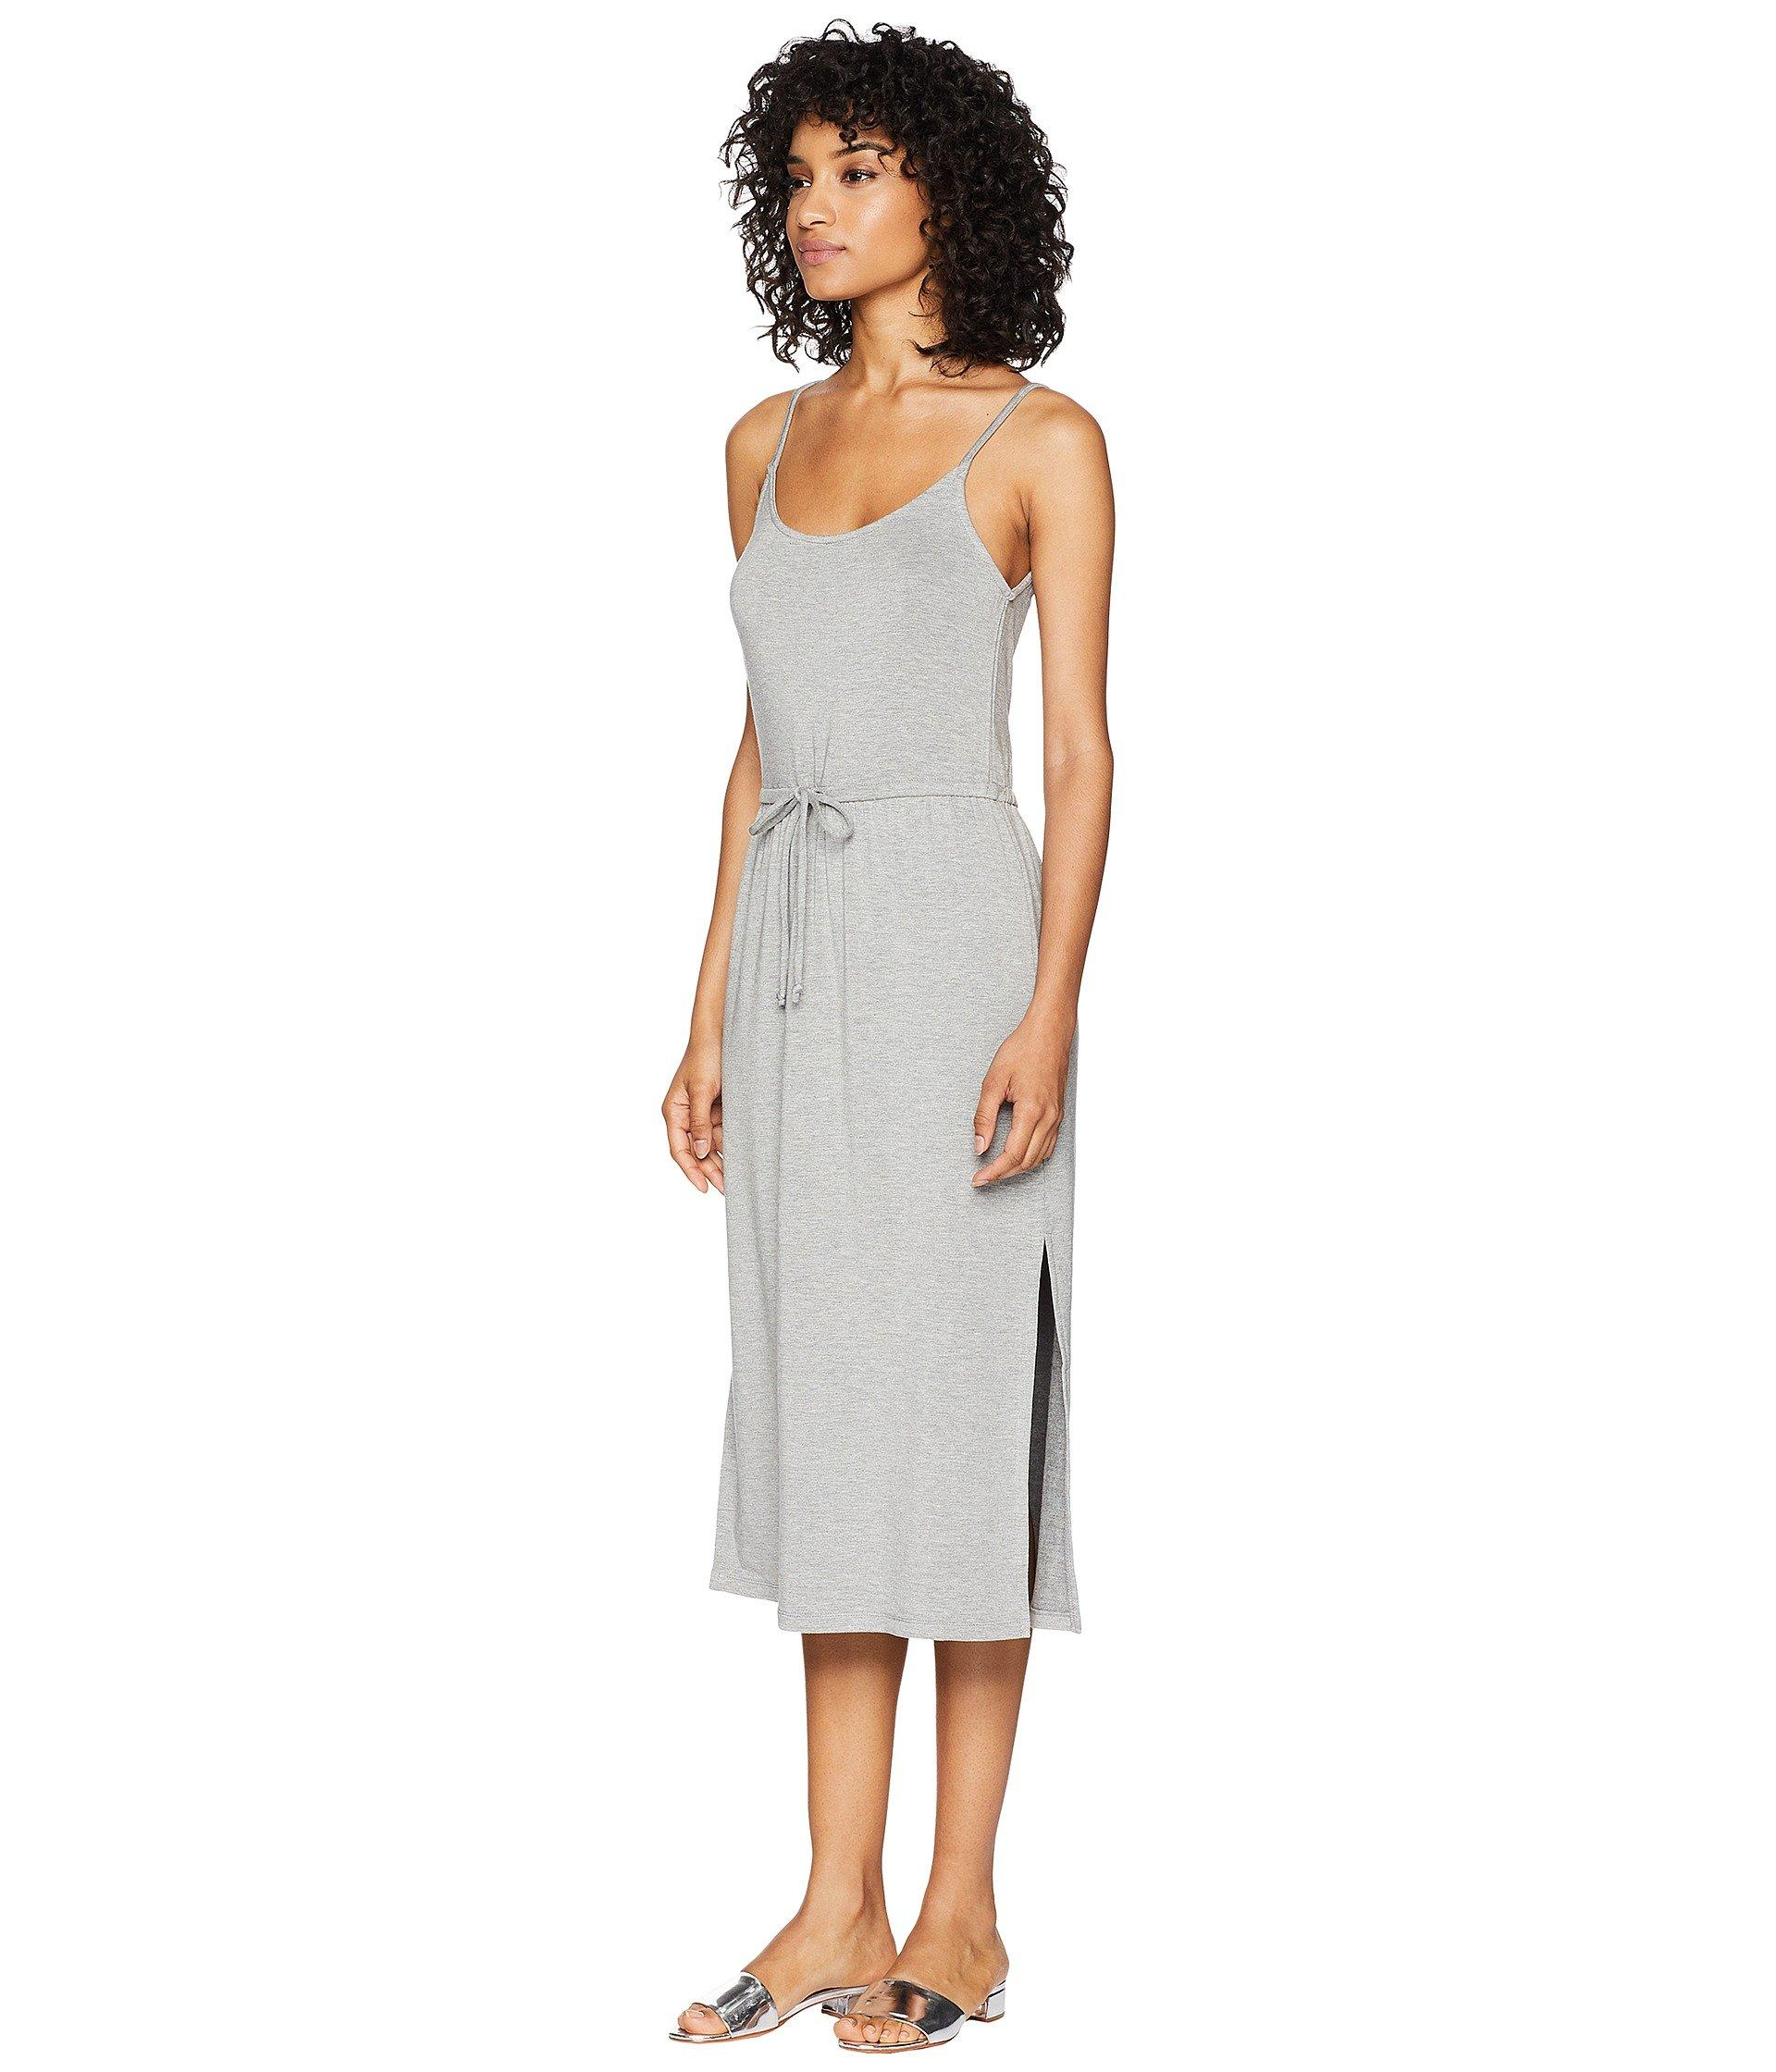 35c3cc0b4b02 Lyst - BB Dakota Everyday s Like Sunday Knit Dress in Gray - Save 44%